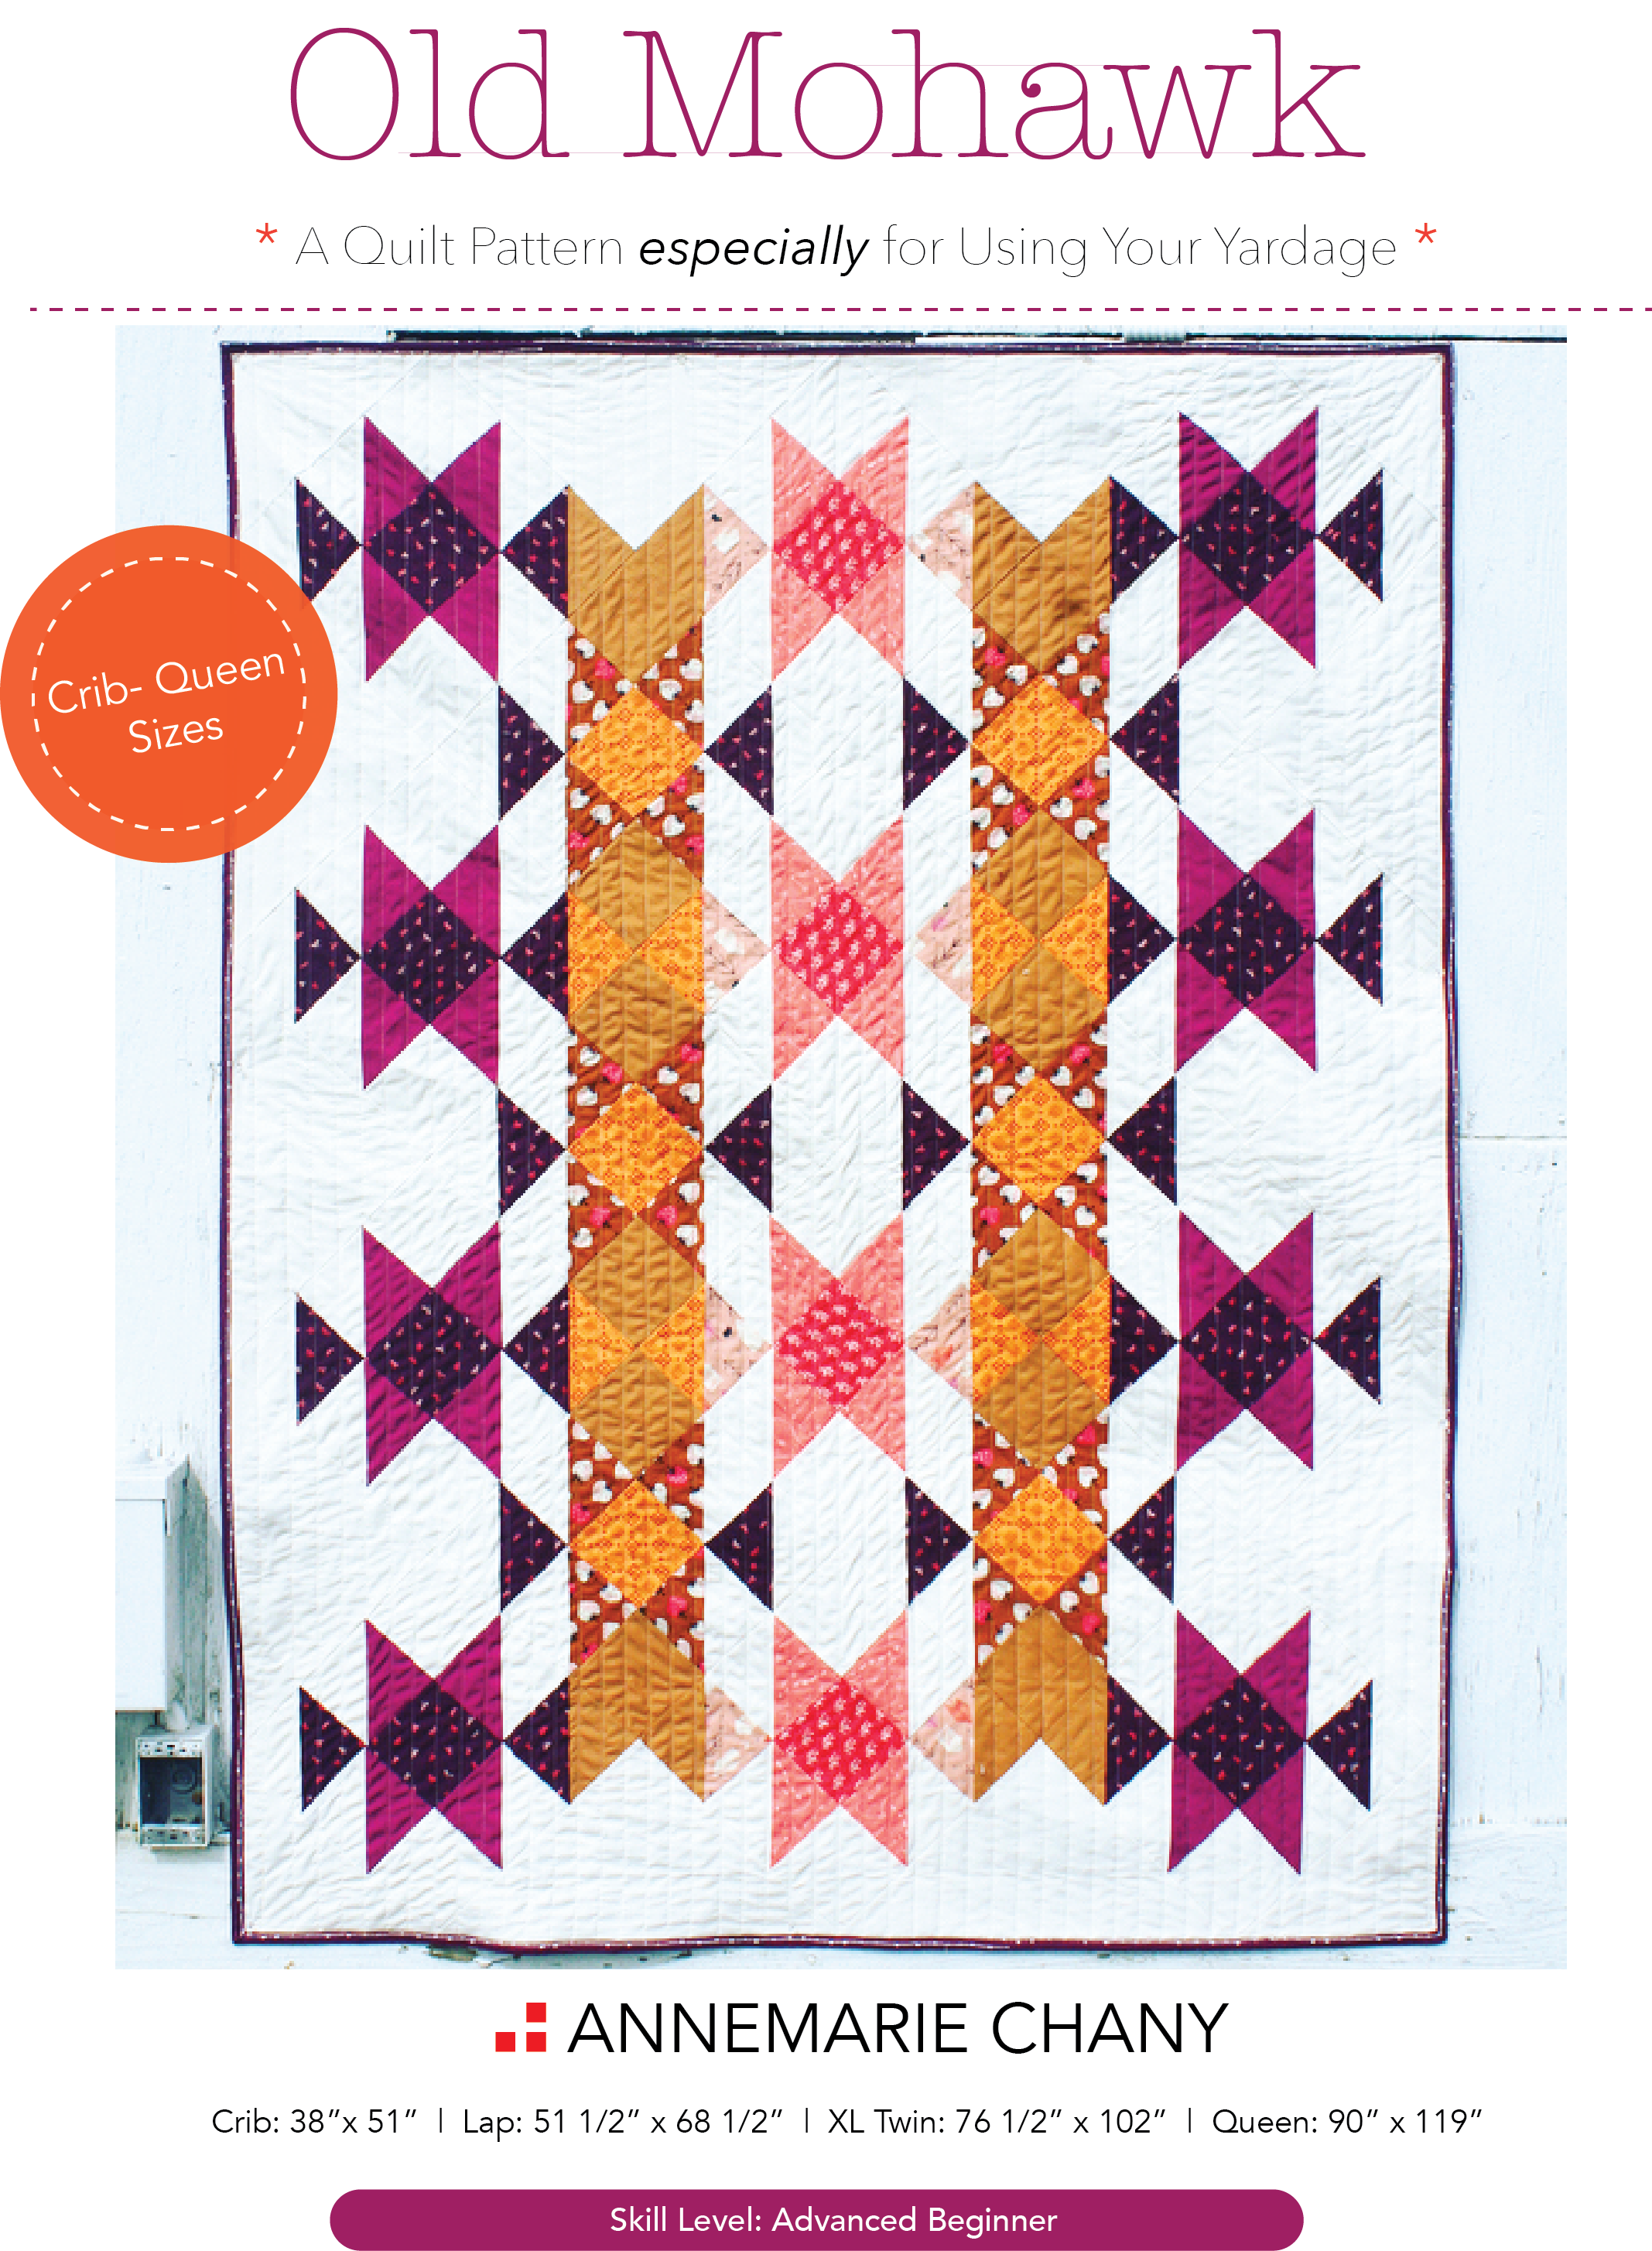 Old Mohawk Quilt Pattern Half Square Triangle Beginner Pattern - Make 8 HSTs at a Time